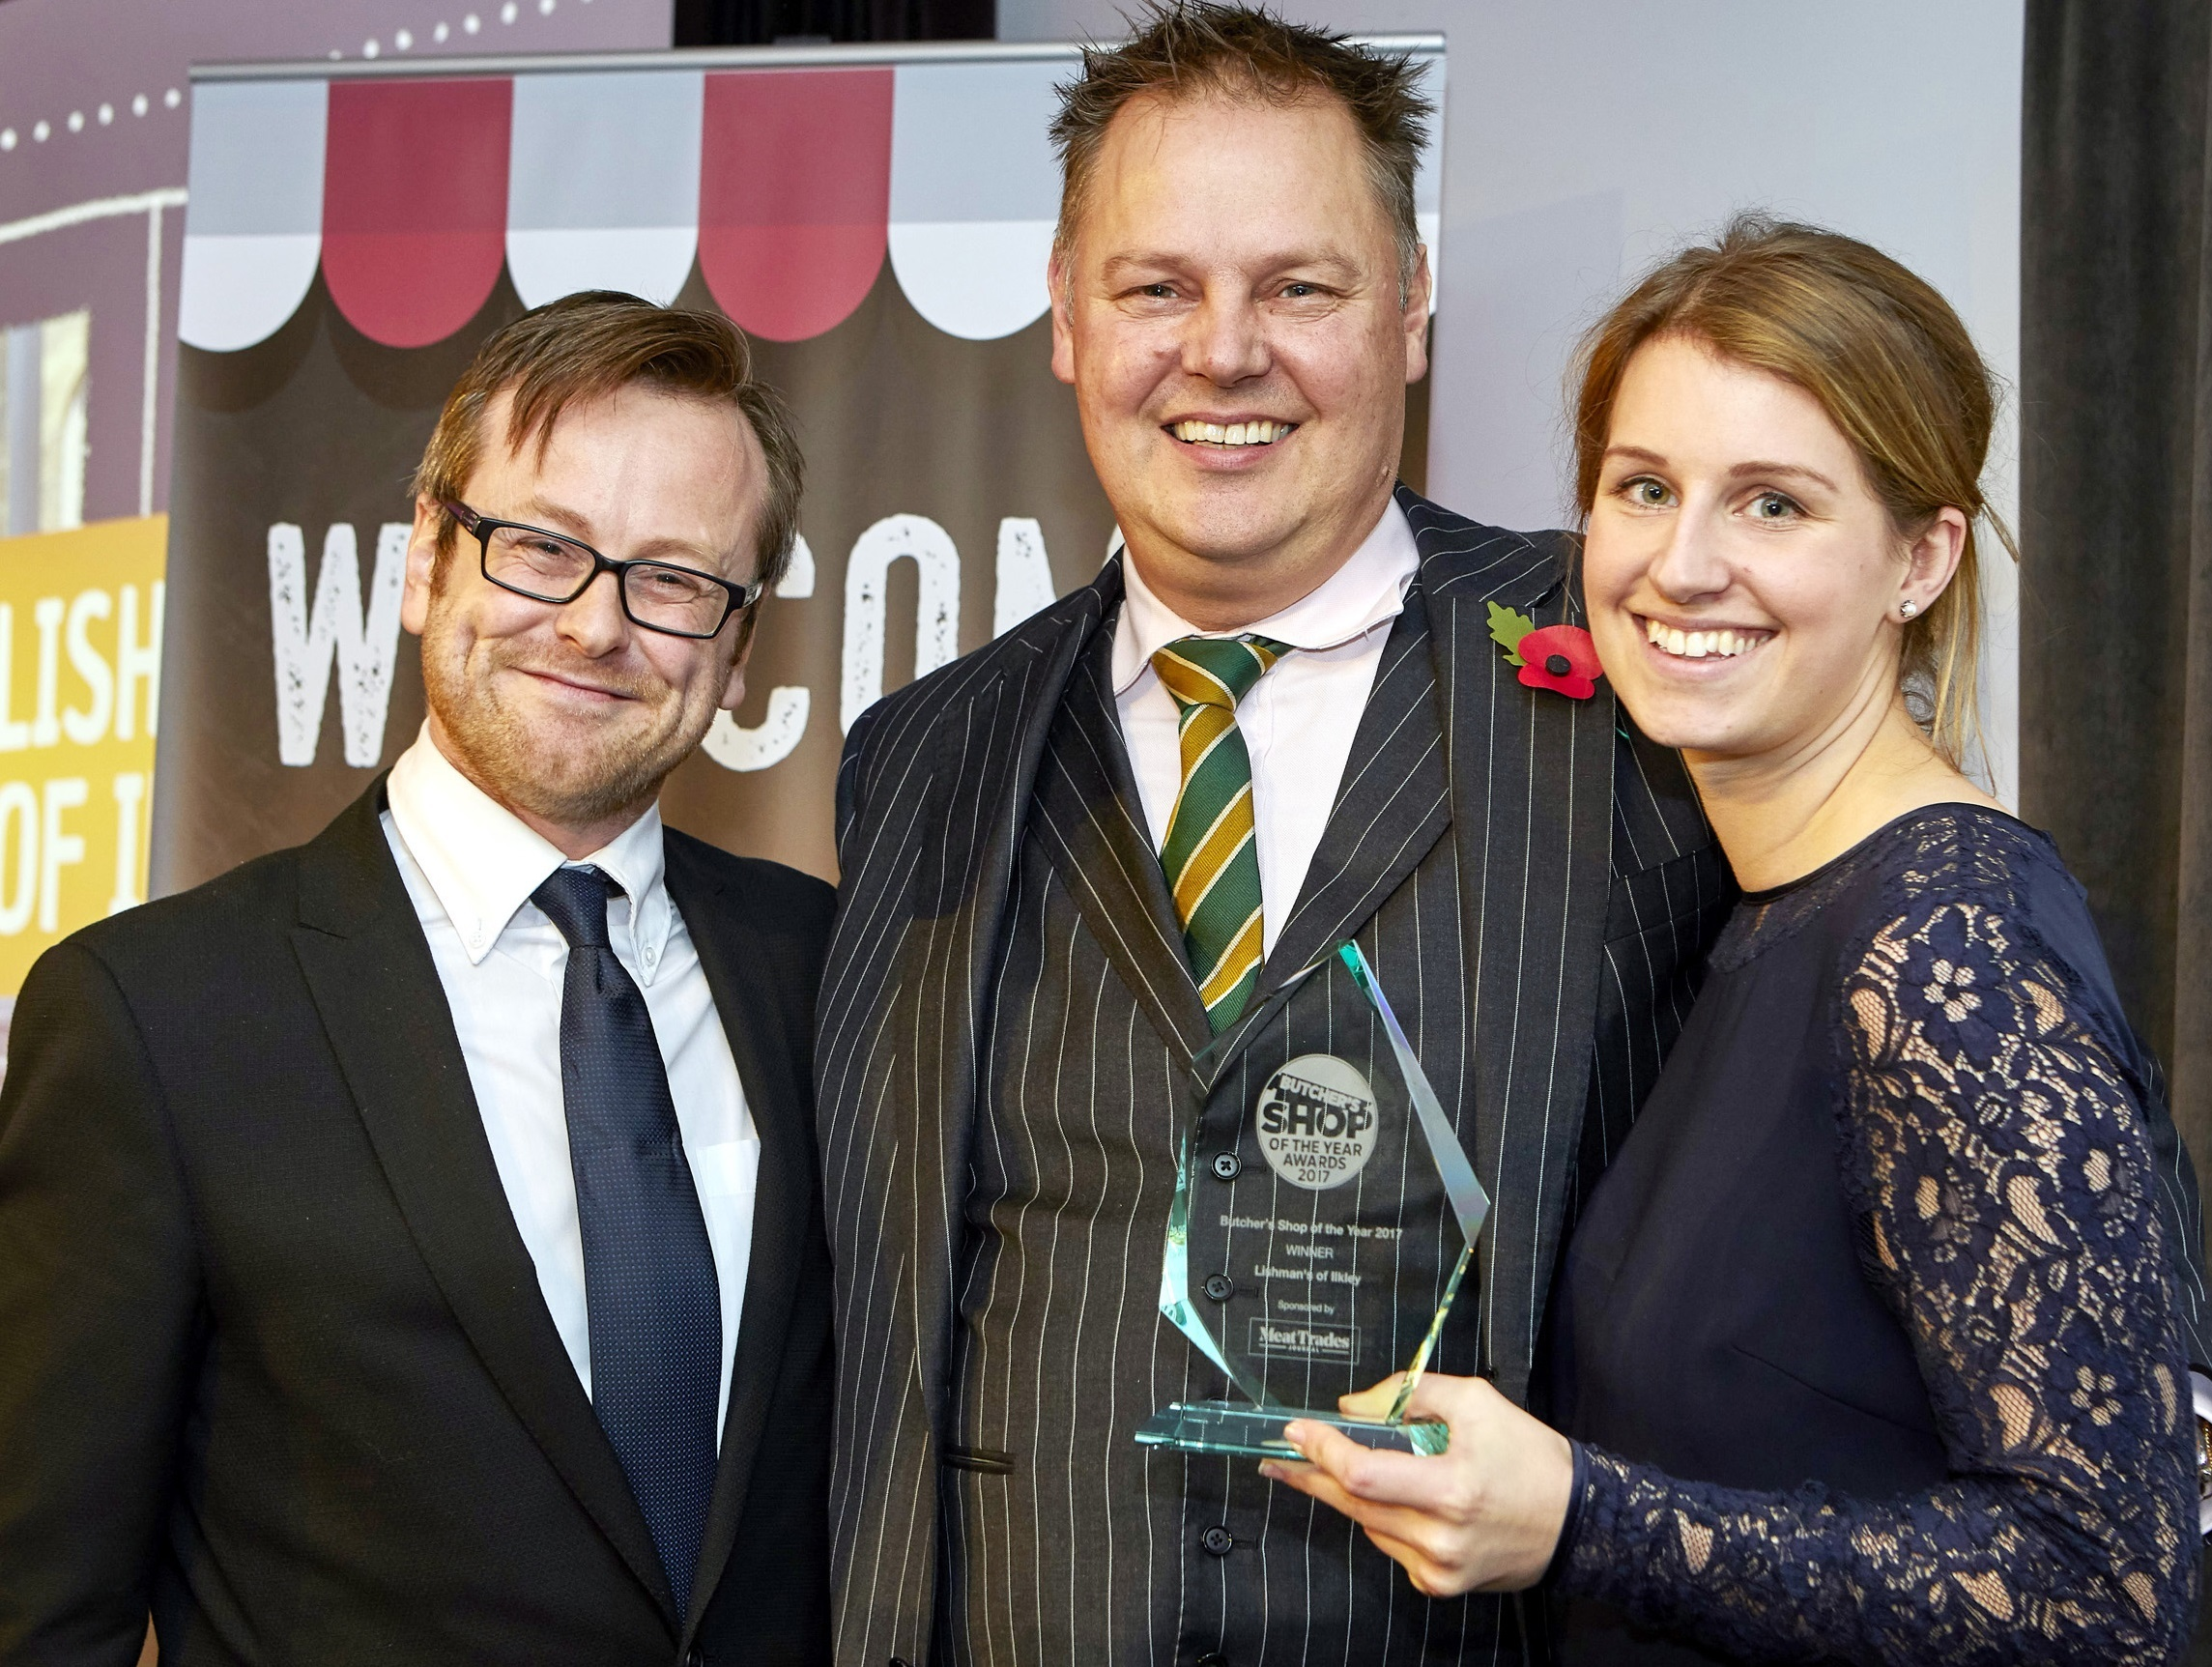 Father and daughter David and Emma Lishman are pictured after winning UK Butchers Shop of the Year, joined by Meat Trade Journal's deputy editor Aidan Fortune, left